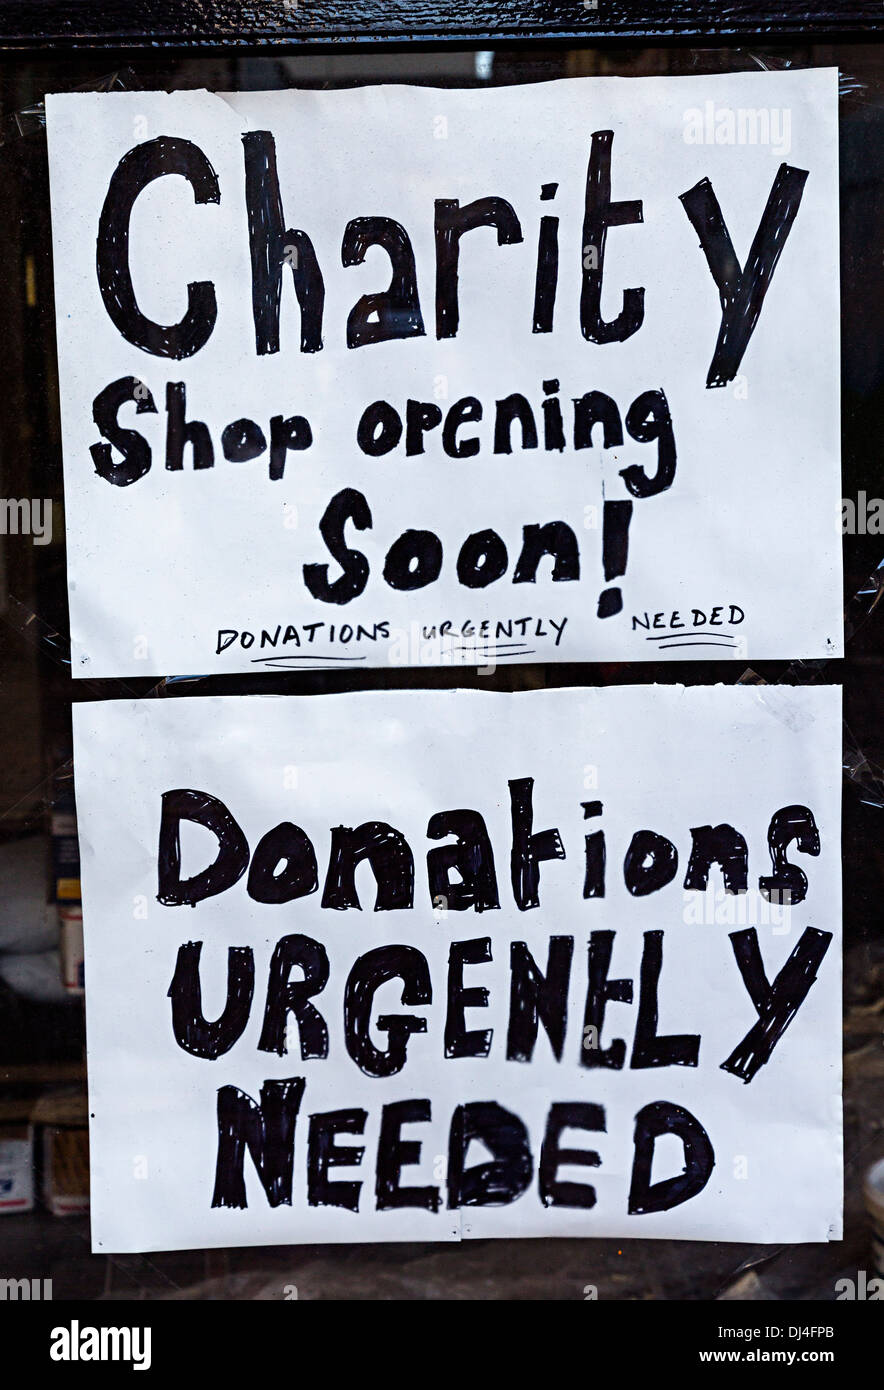 Sign in a charity shop window asking for donations, Republic of Ireland - Stock Image